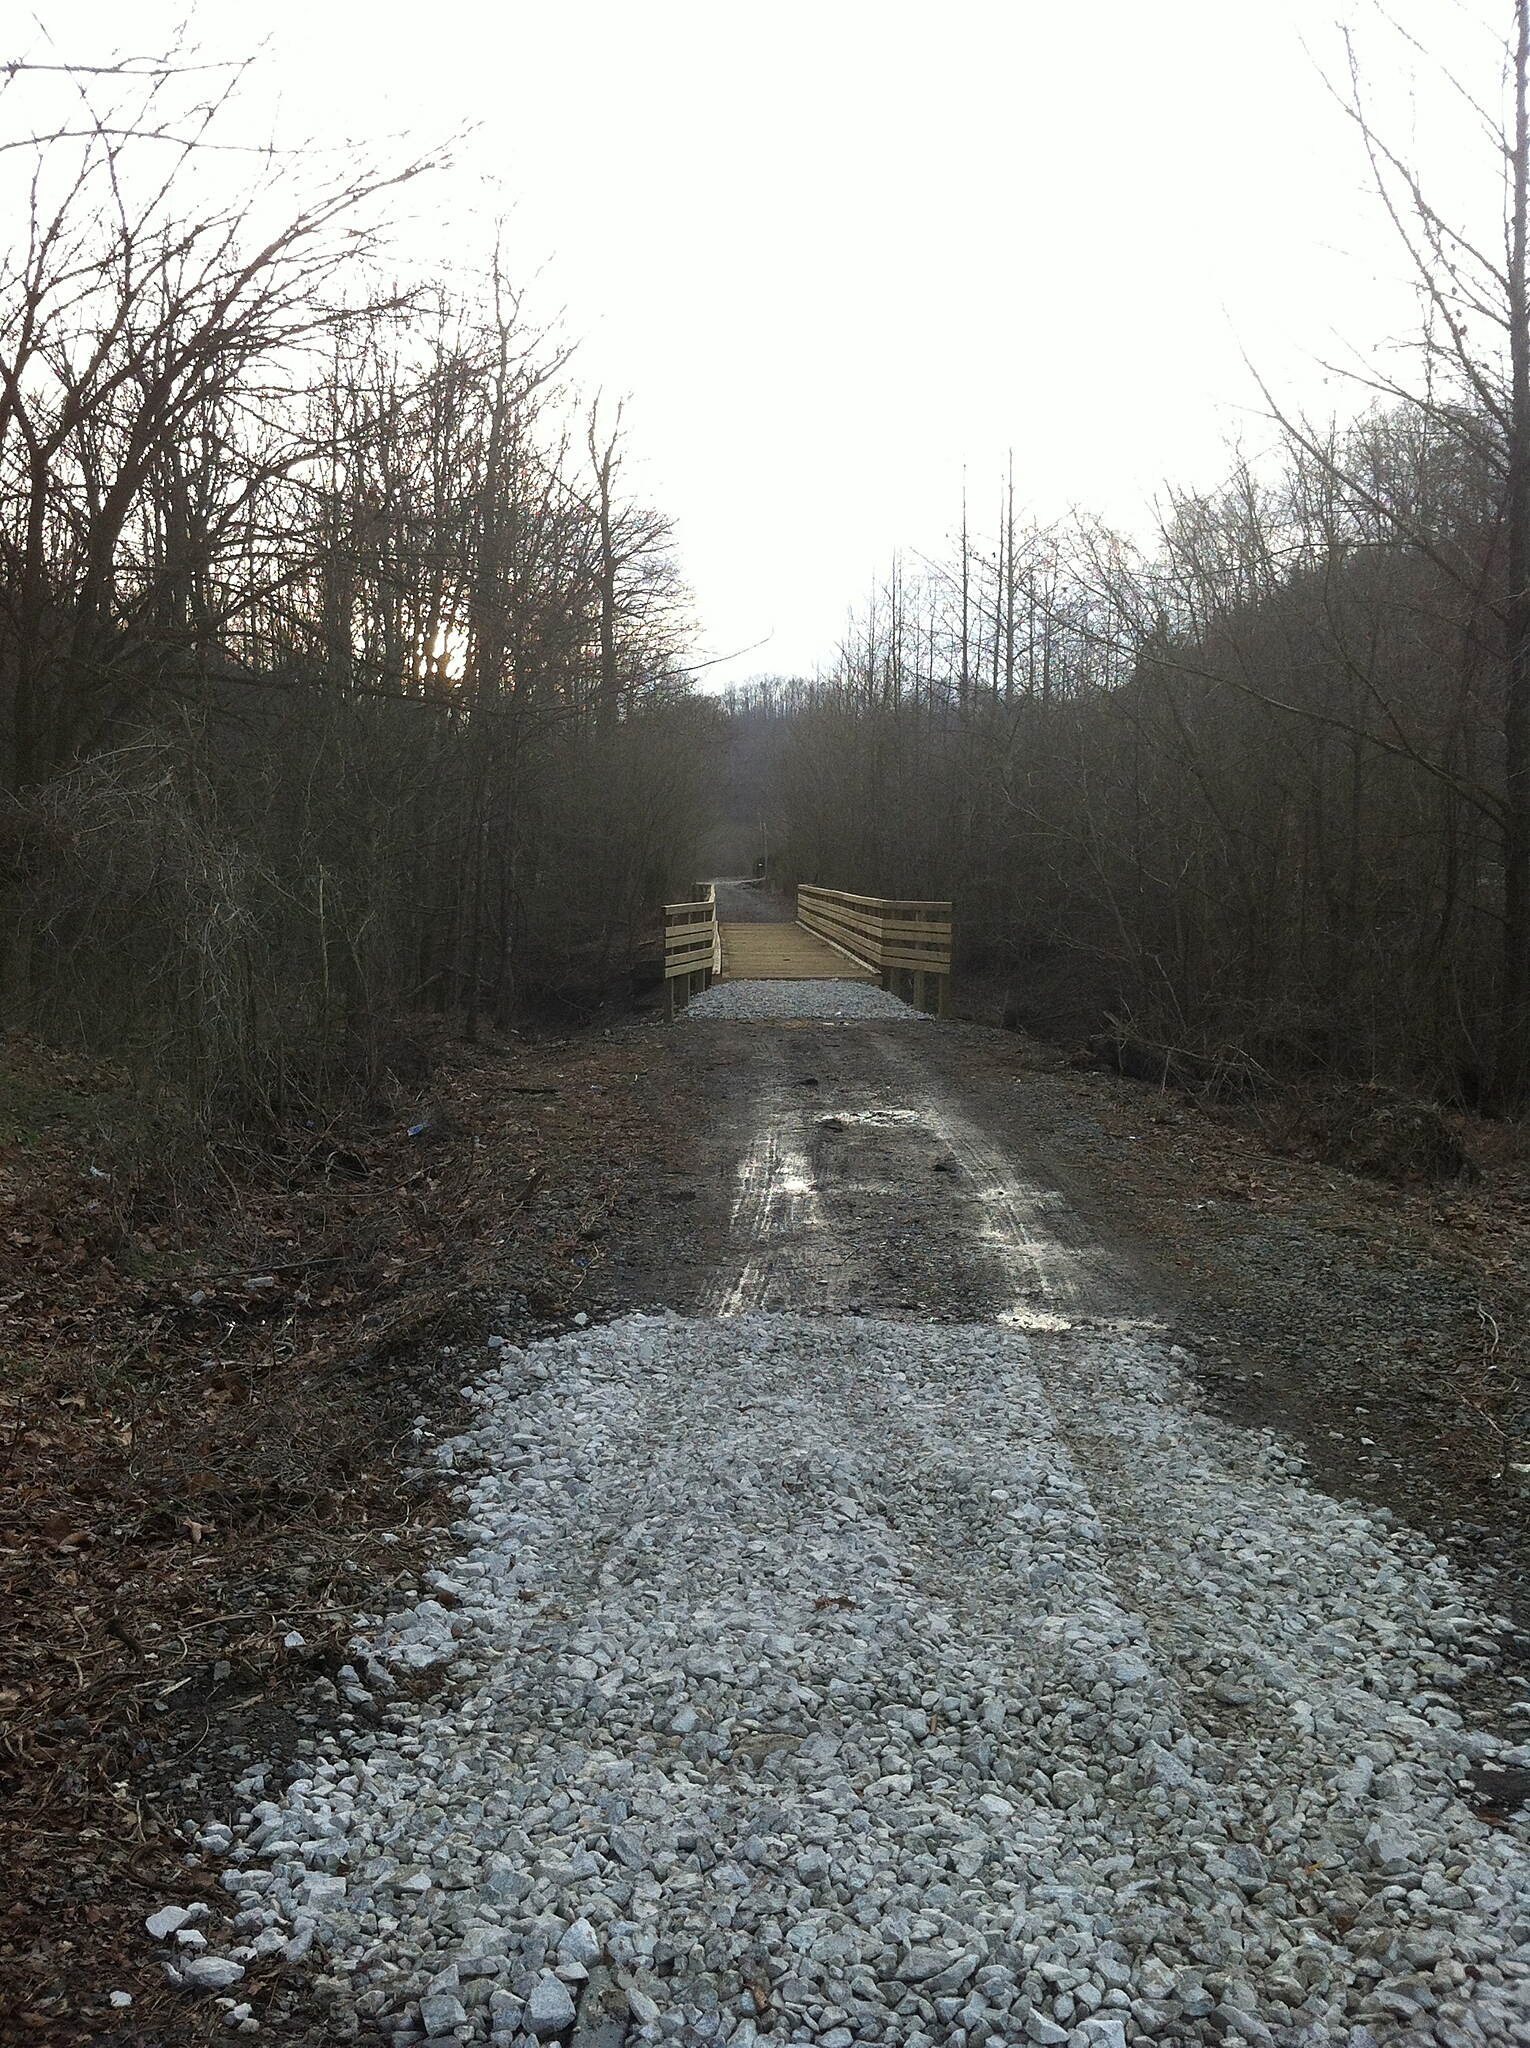 Dawkins Line Rail Trail Bridge just south of US 23